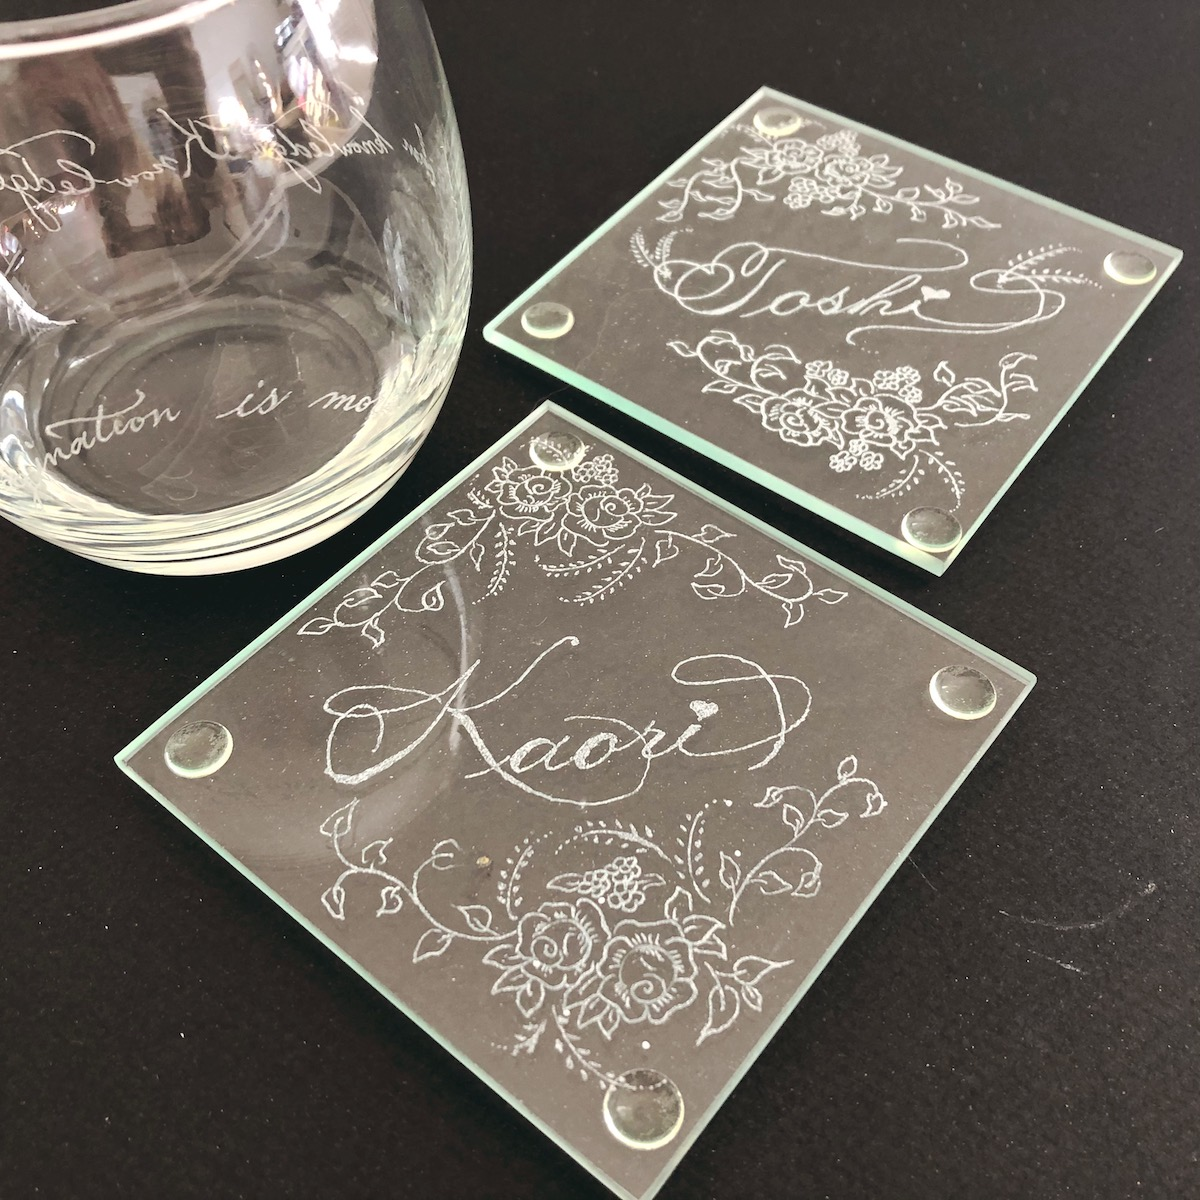 Engraving samples 2